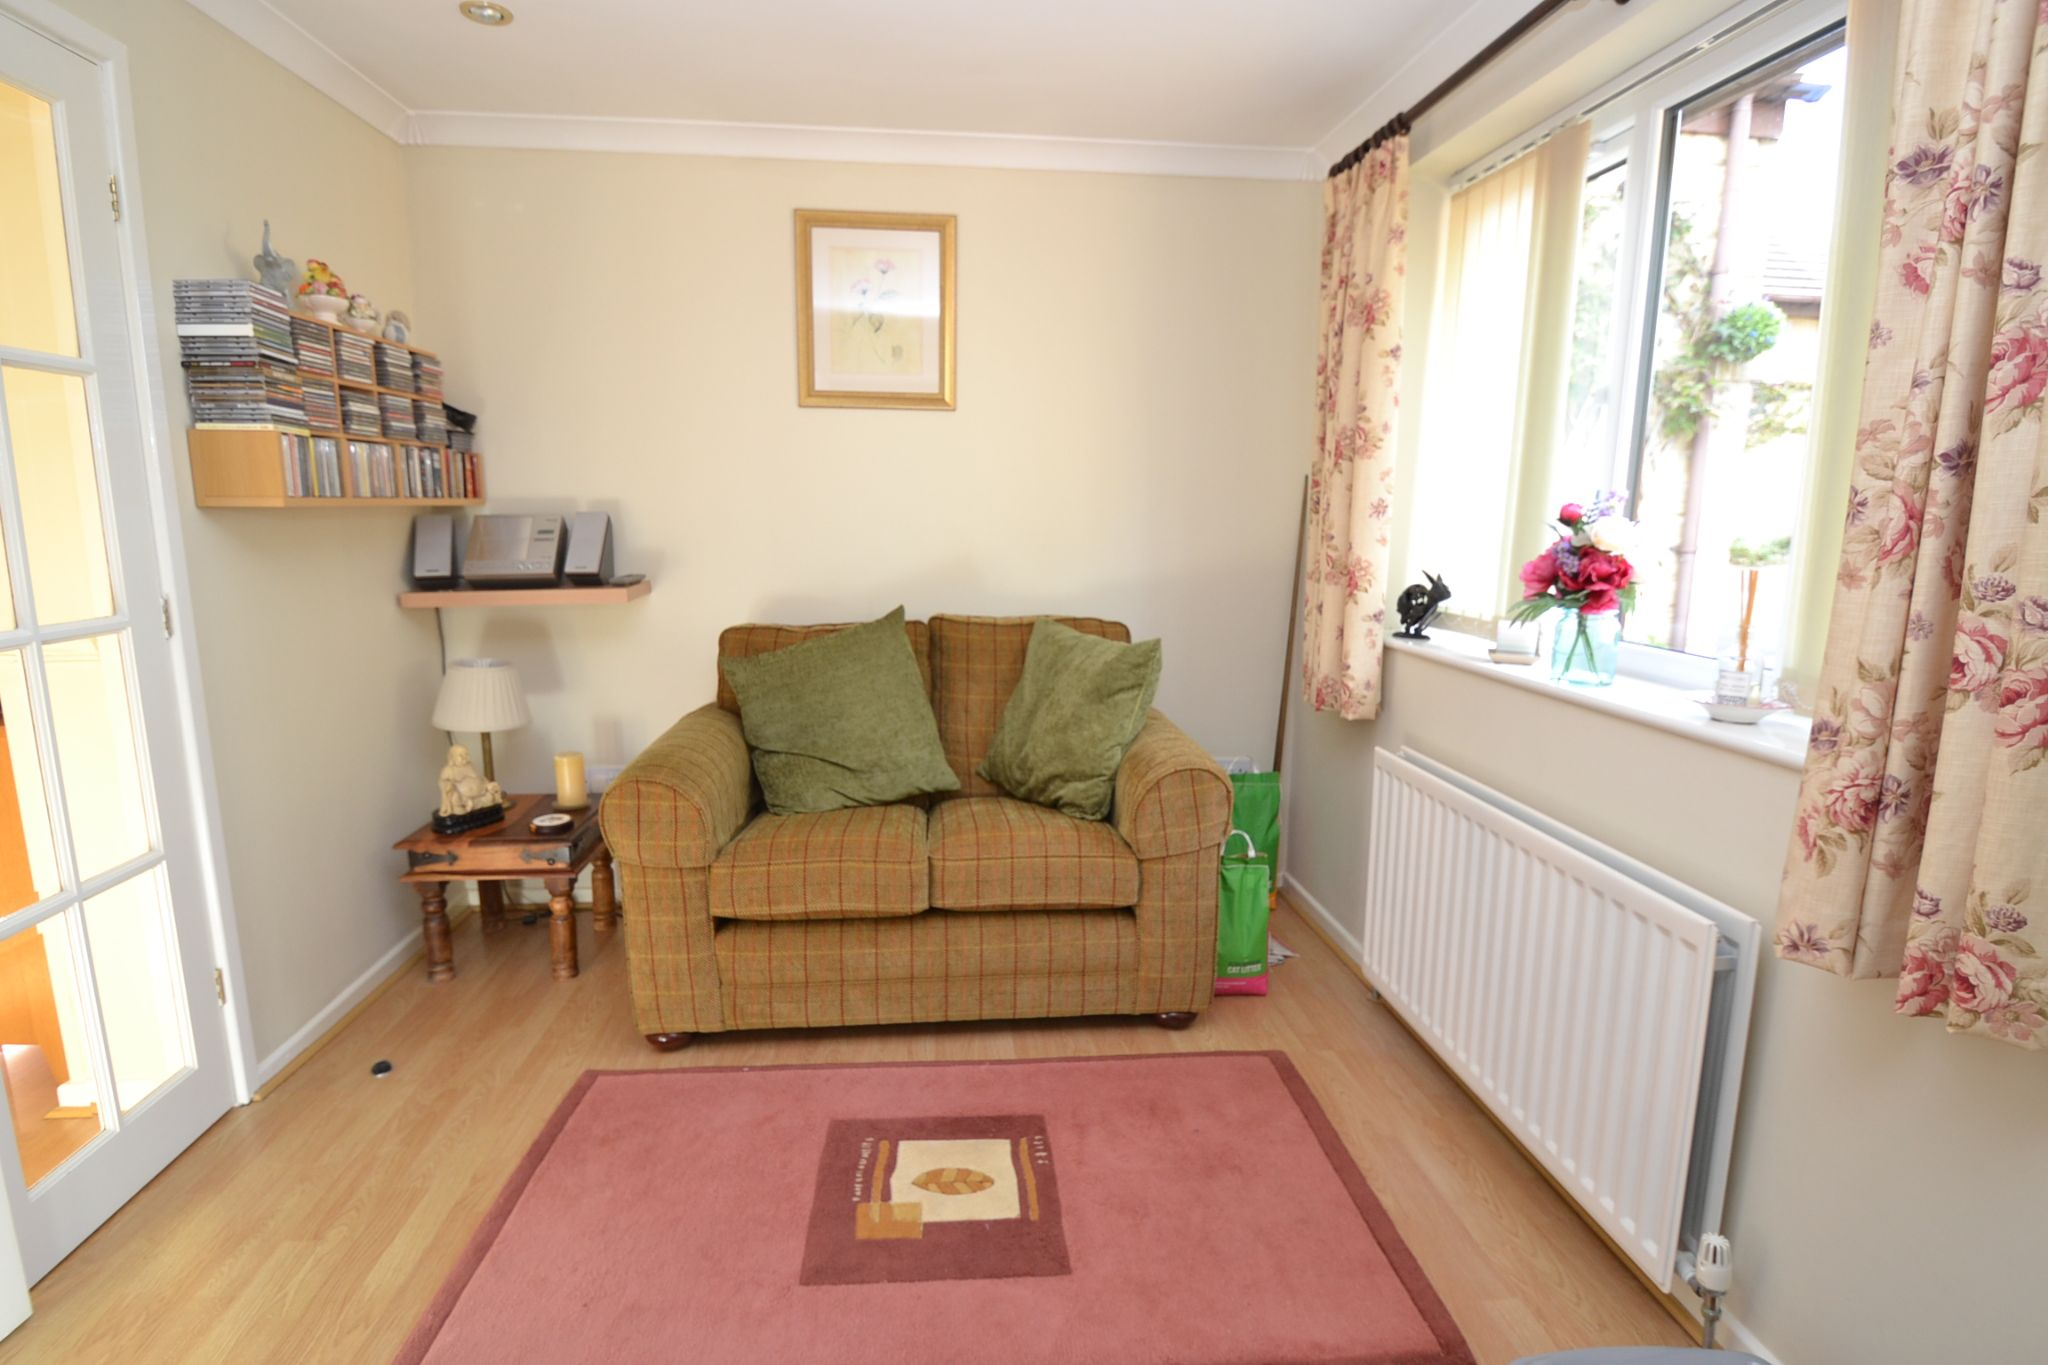 4 Bedroom Detached House For Sale - Photograph 6